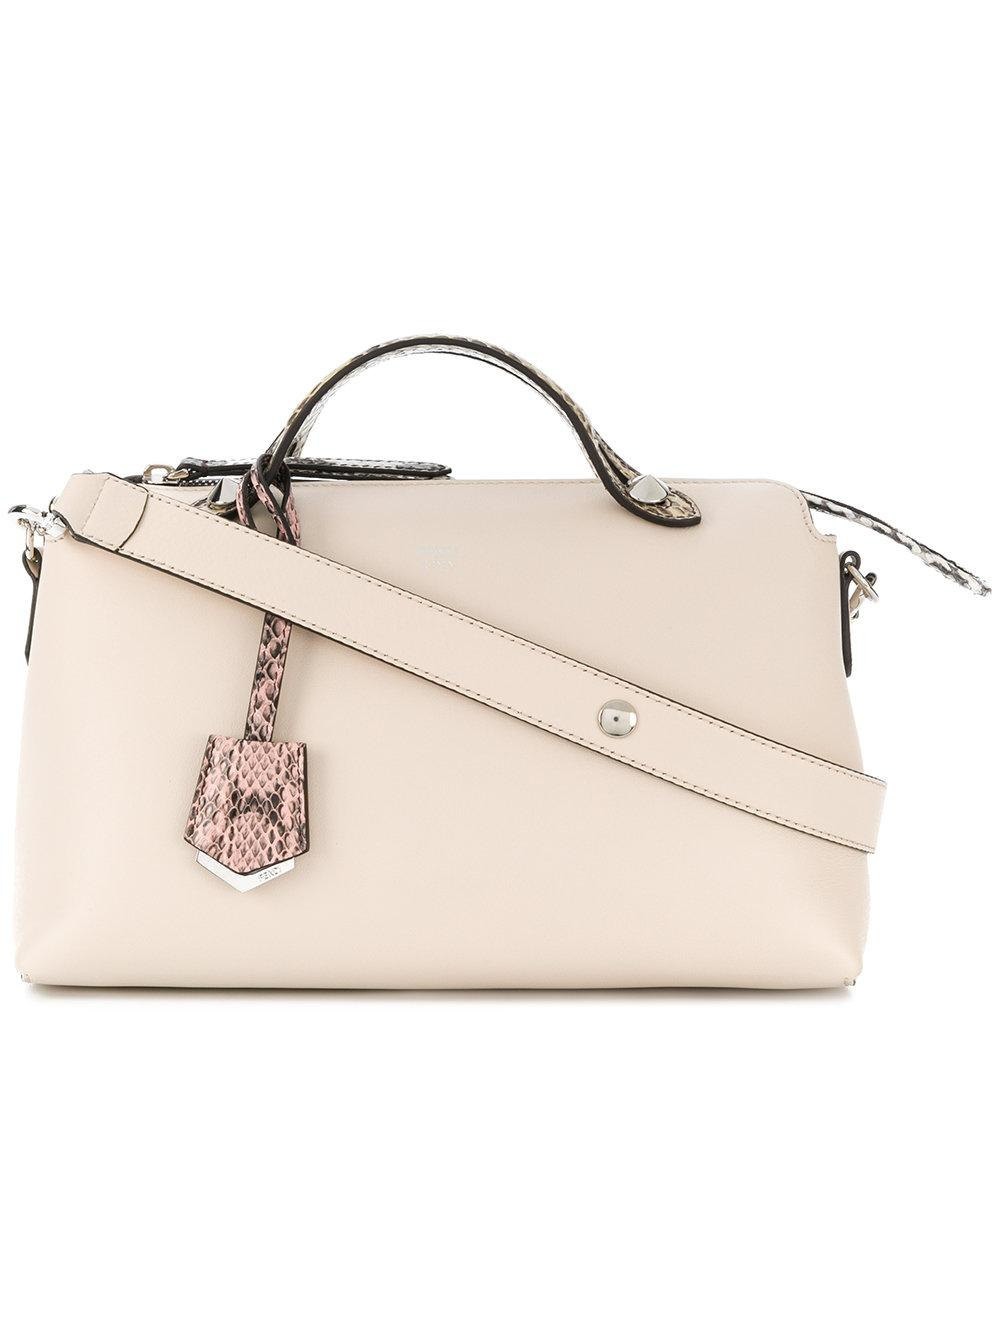 4635f9b799 Fendi By The Way Small Shoulder Bag - Cream In Neutrals